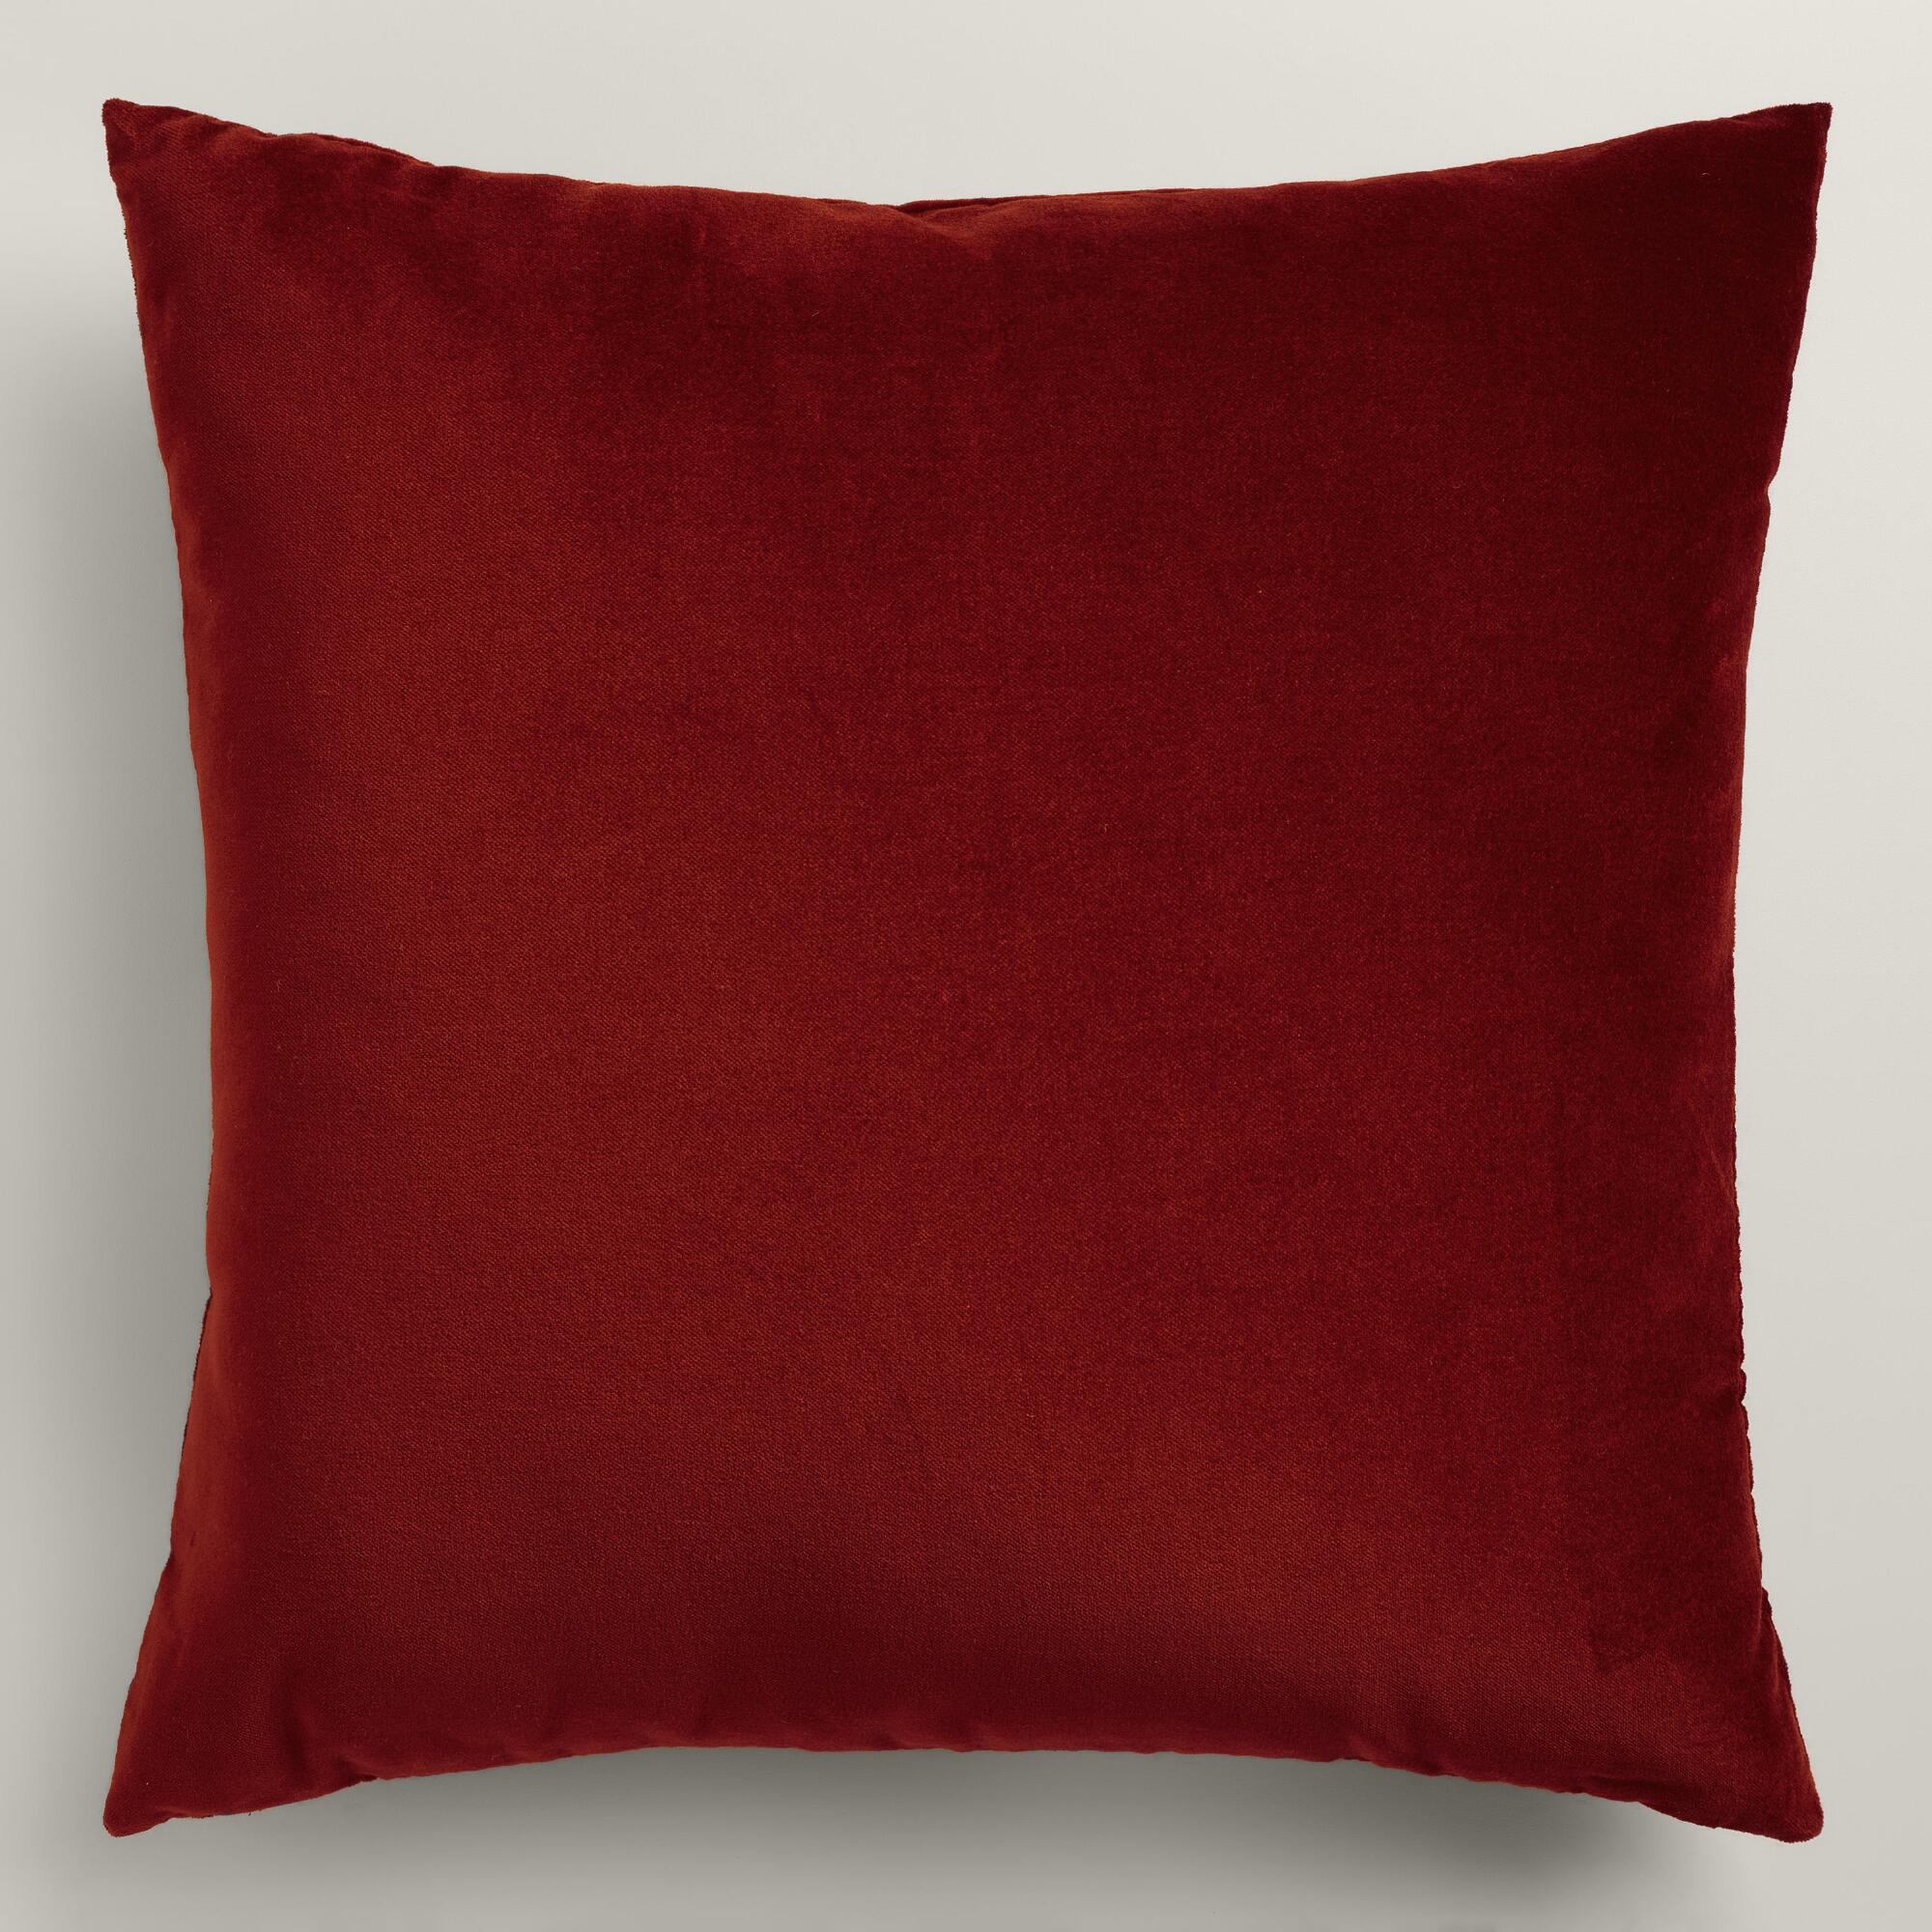 Throw Pillow Red : Red Velvet Throw Pillow World Market